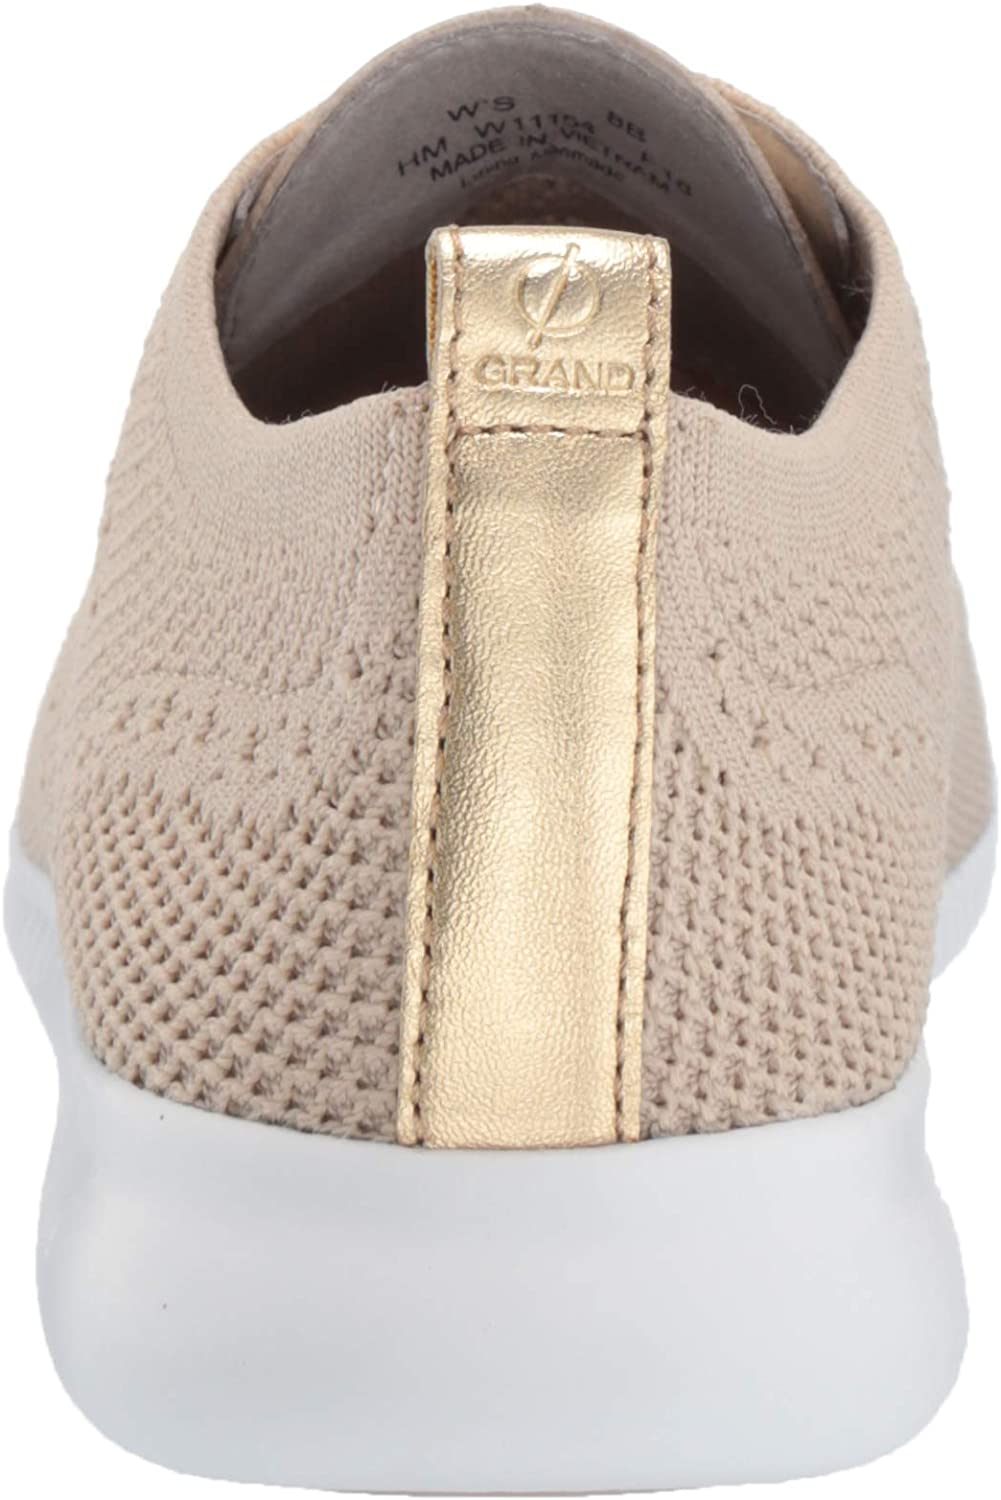 Cole Haan Womens 2.Zerogrand Stitchlite Sneakers